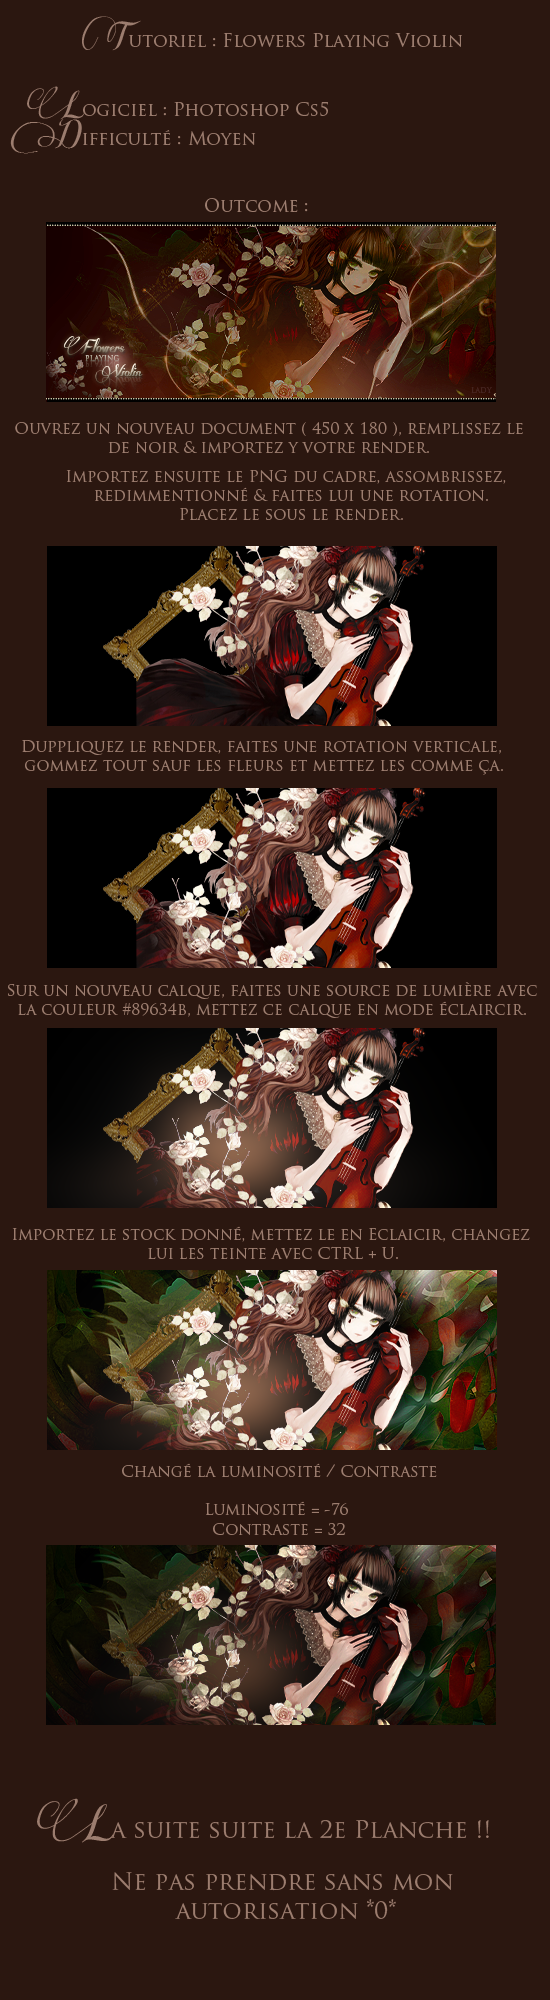 [Photoshop] Tutoriel : Flowers Playing Violin + Bonus Typo 345847tutoviolon1